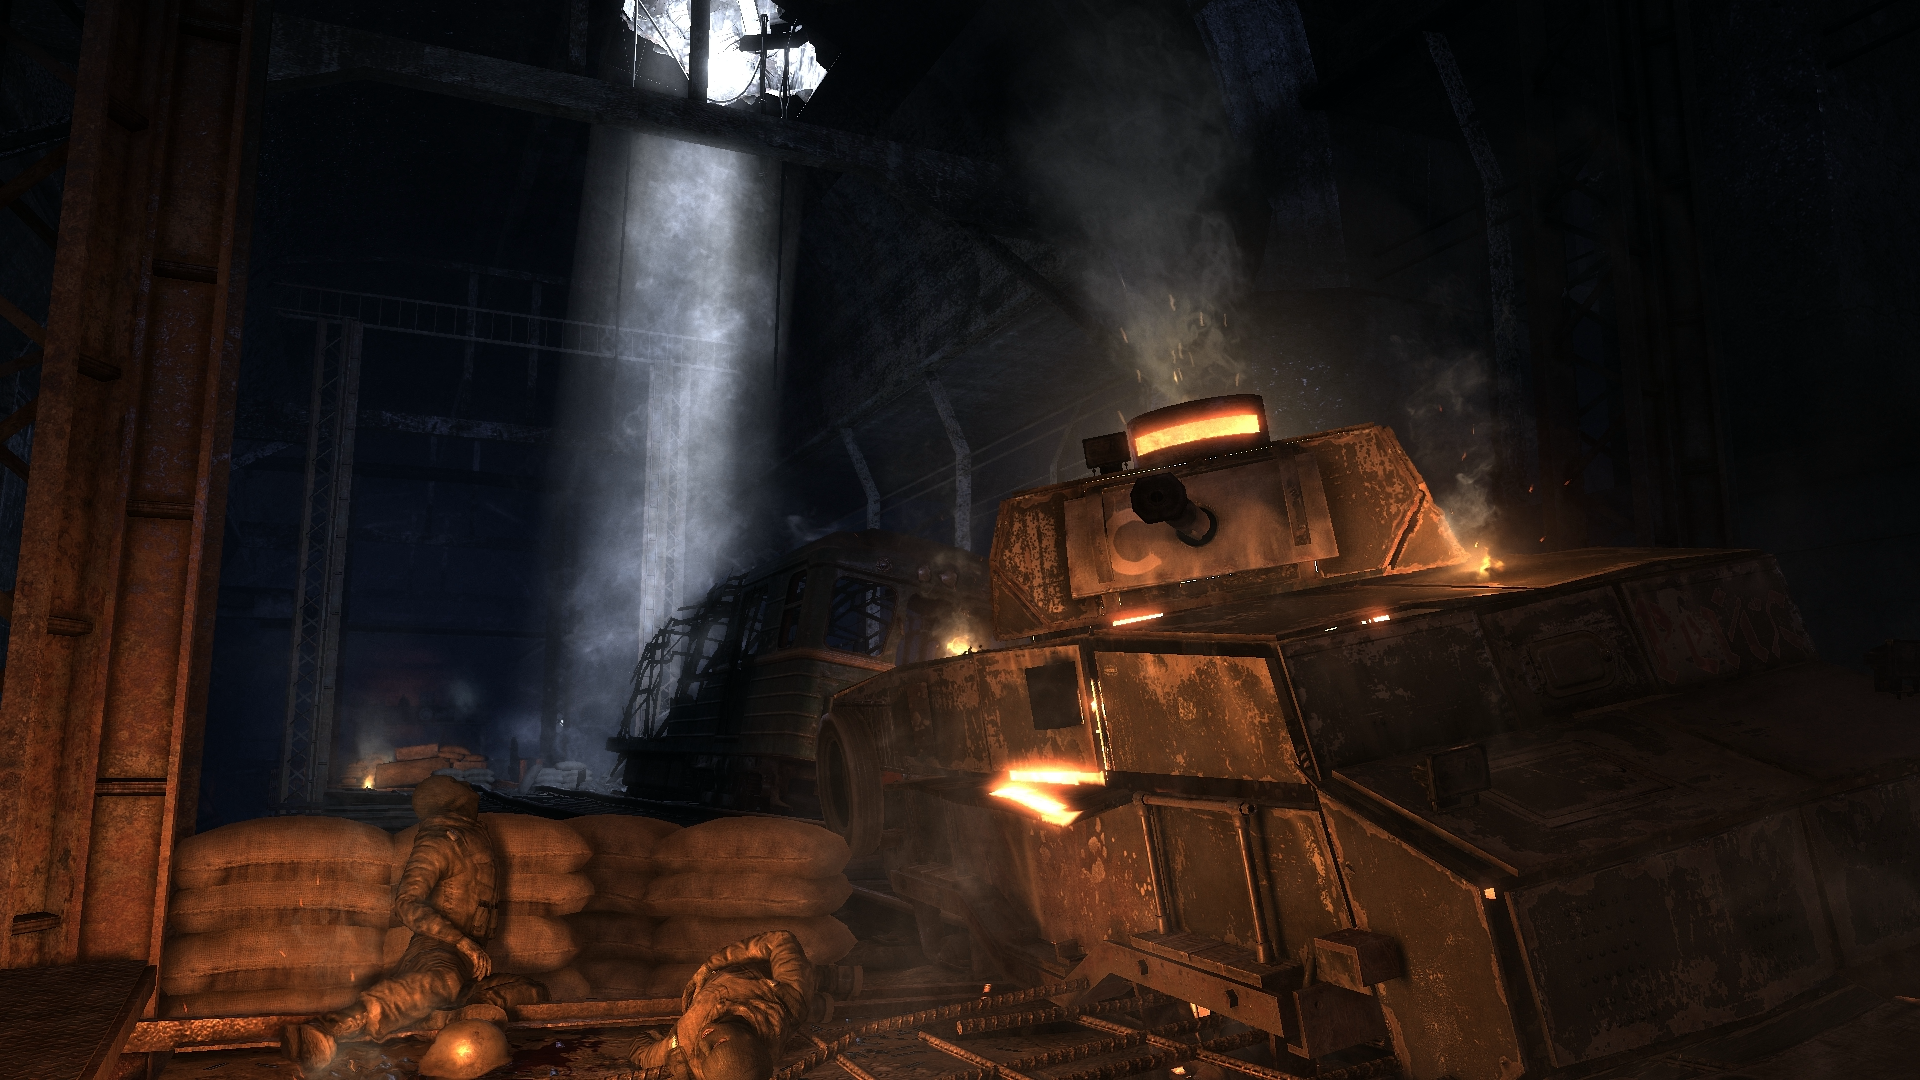 metro 2033 reich related - photo #27